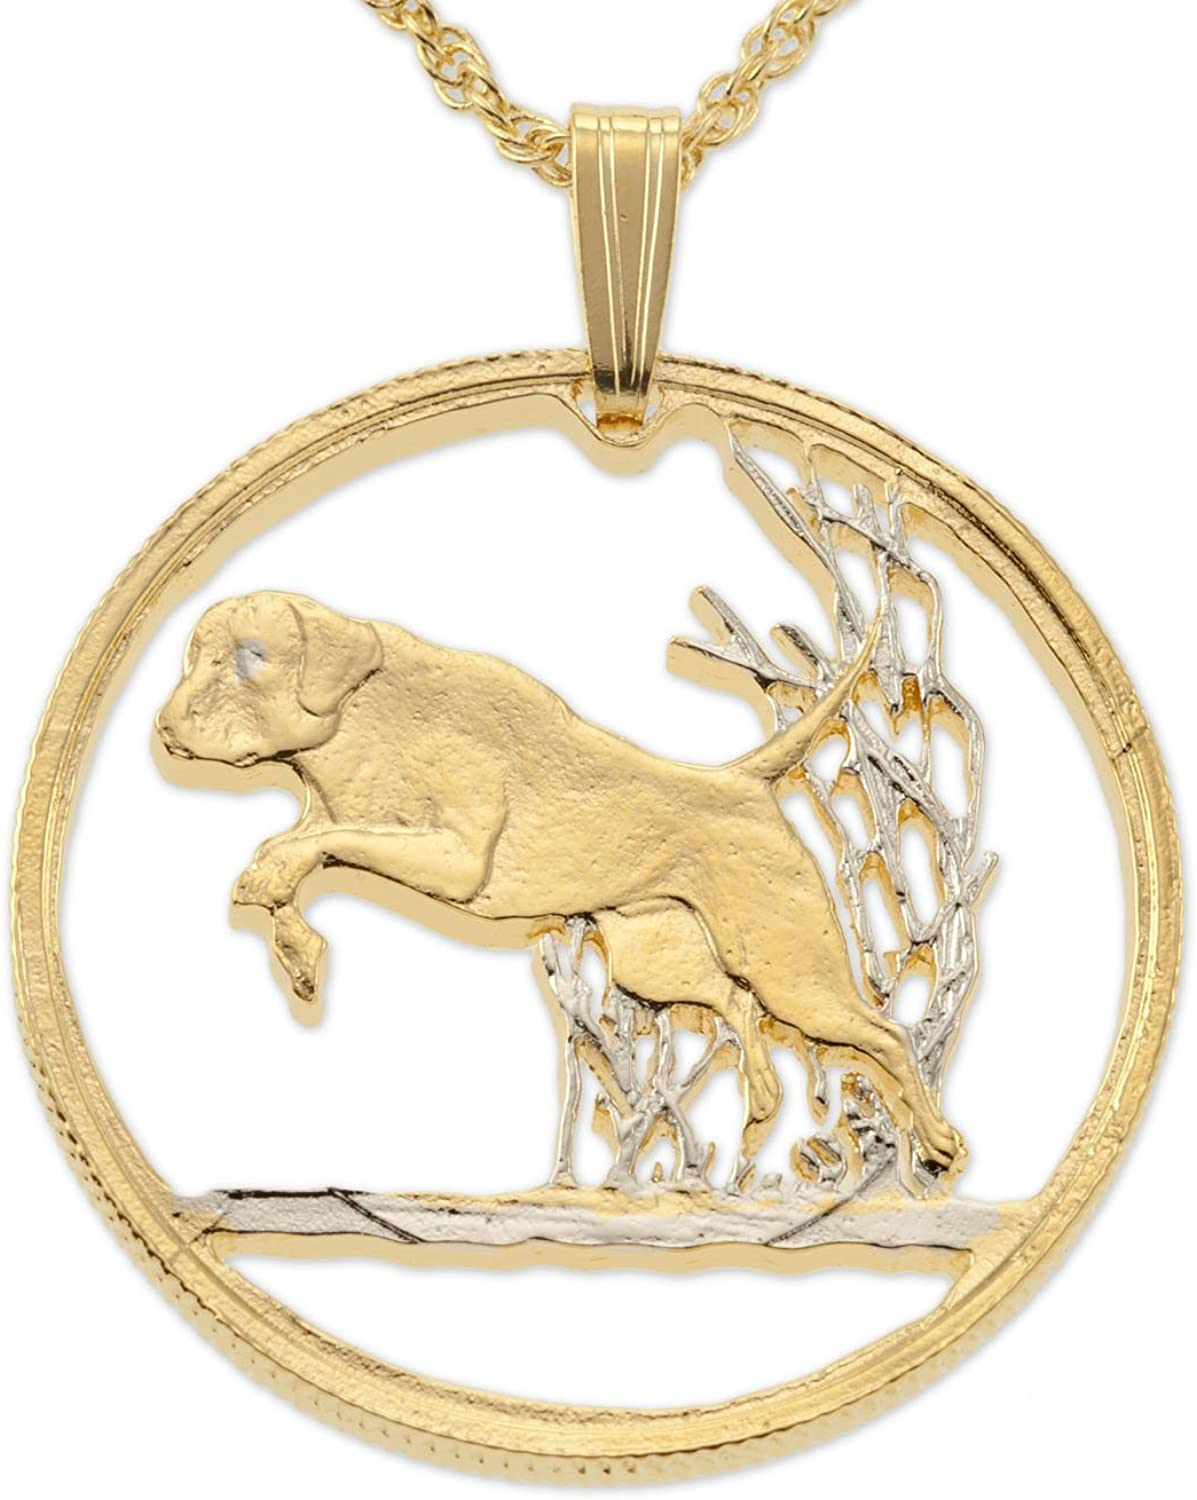 Labrador Retriever Pendant Canada Coin Fixed price for sale Hand Karat 14 New product Gold Cut